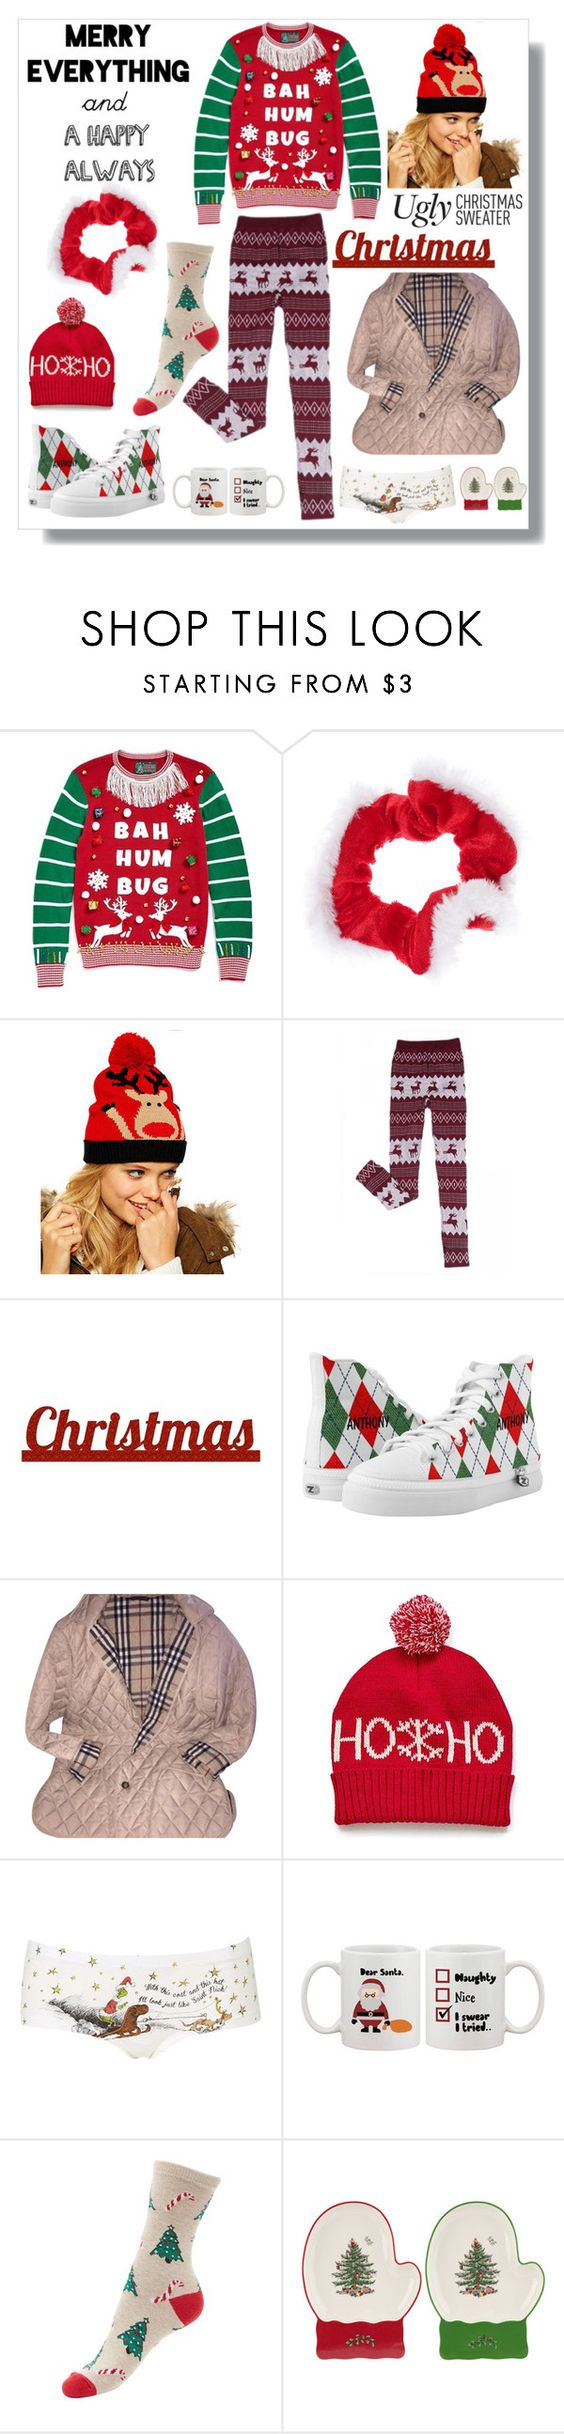 """""""uglychristmassweater"""" by bellamonica ❤ liked on Polyvore featuring Ugly Christmas Sweater, Chicnova Fashion, Sixtrees, Burberry, Topshop, Spode, women's clothing, women's fashion, women and female"""